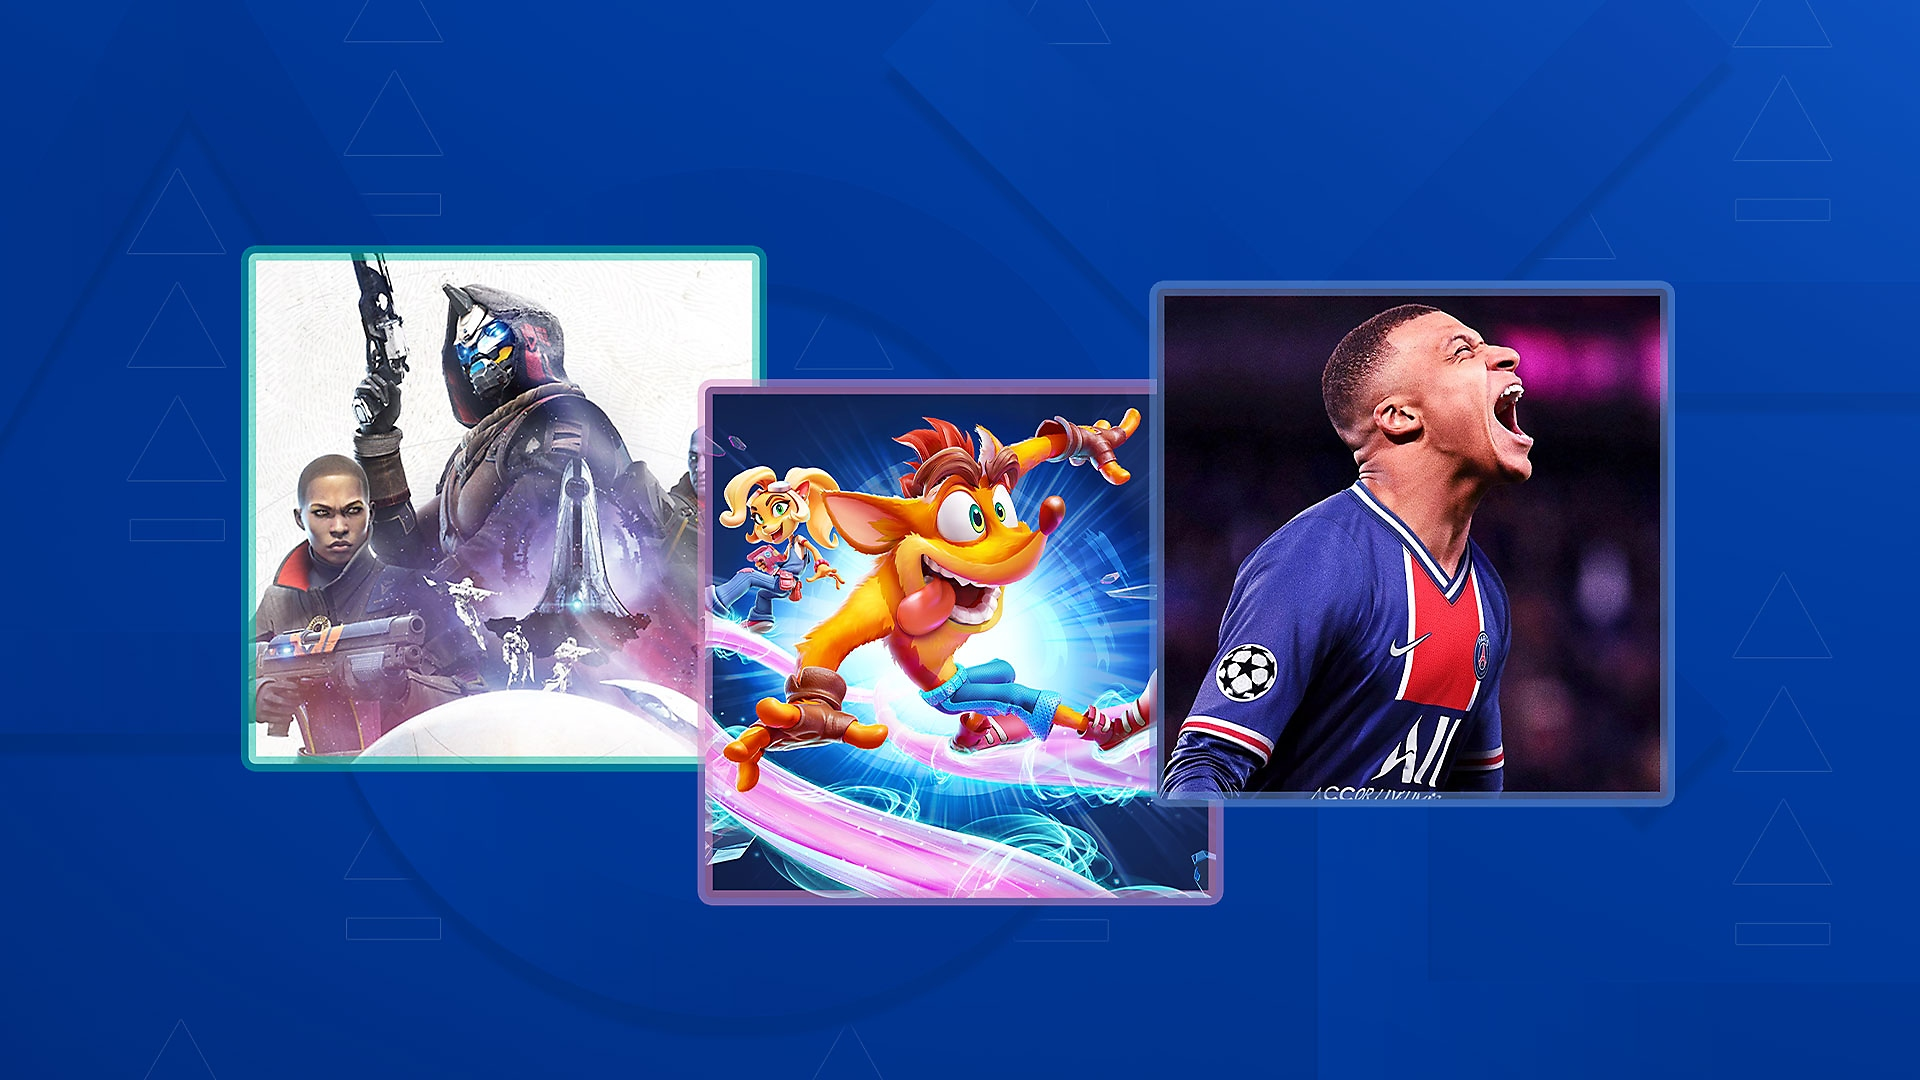 PS4 games enhanced for PS5 promotional key art